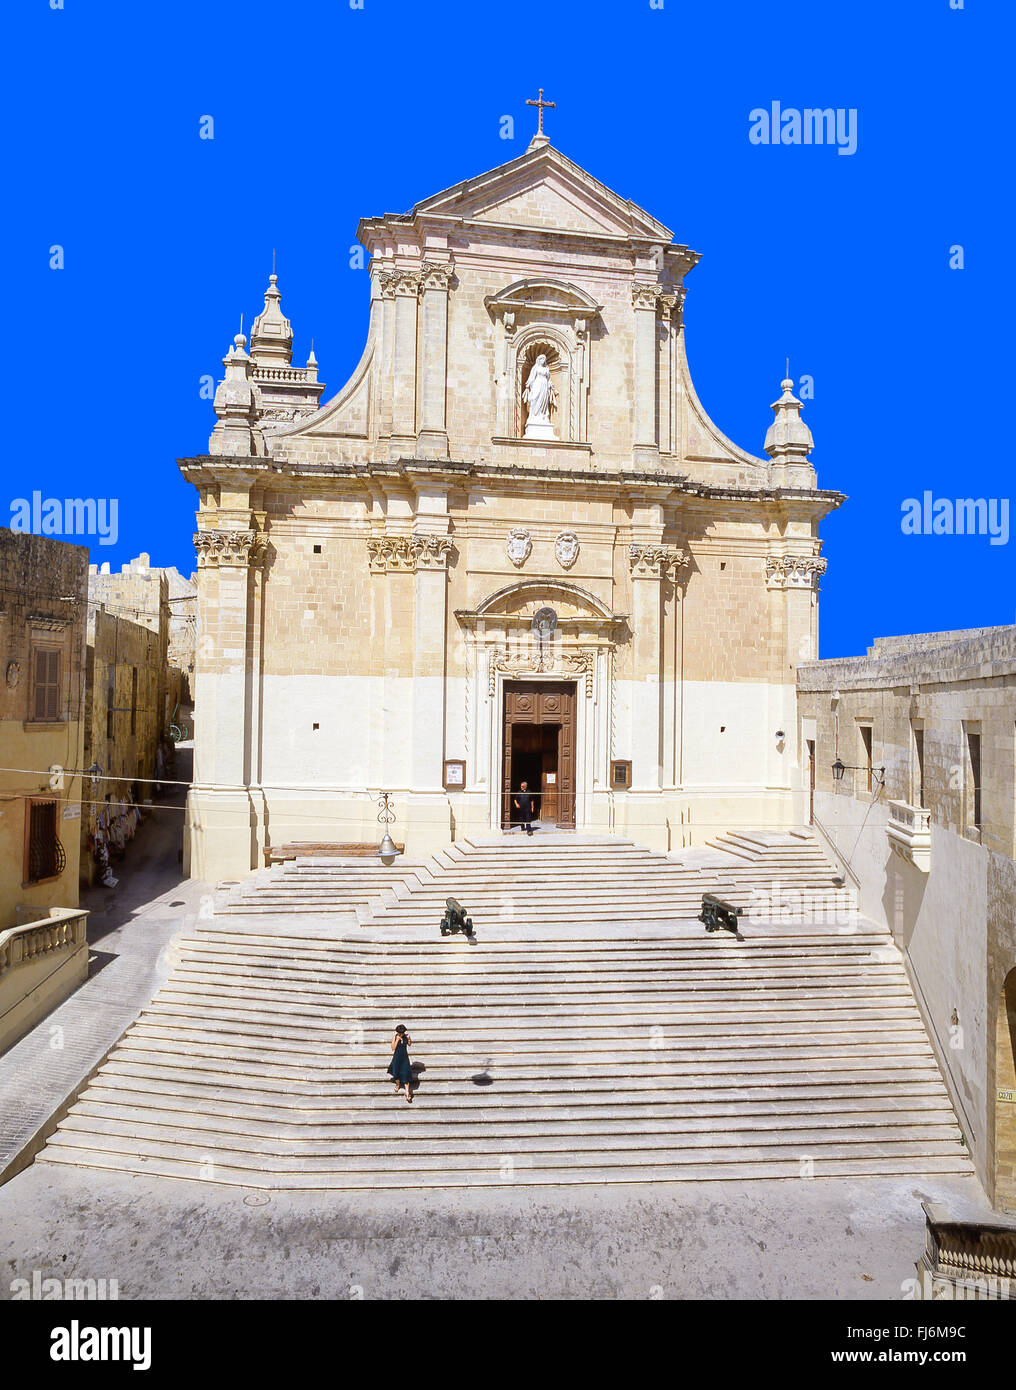 The Cathedral of Assumption, The Citadella, Città Victoria, Gozo (Għawdex), Gozo Region, Republic of Malta - Stock Image